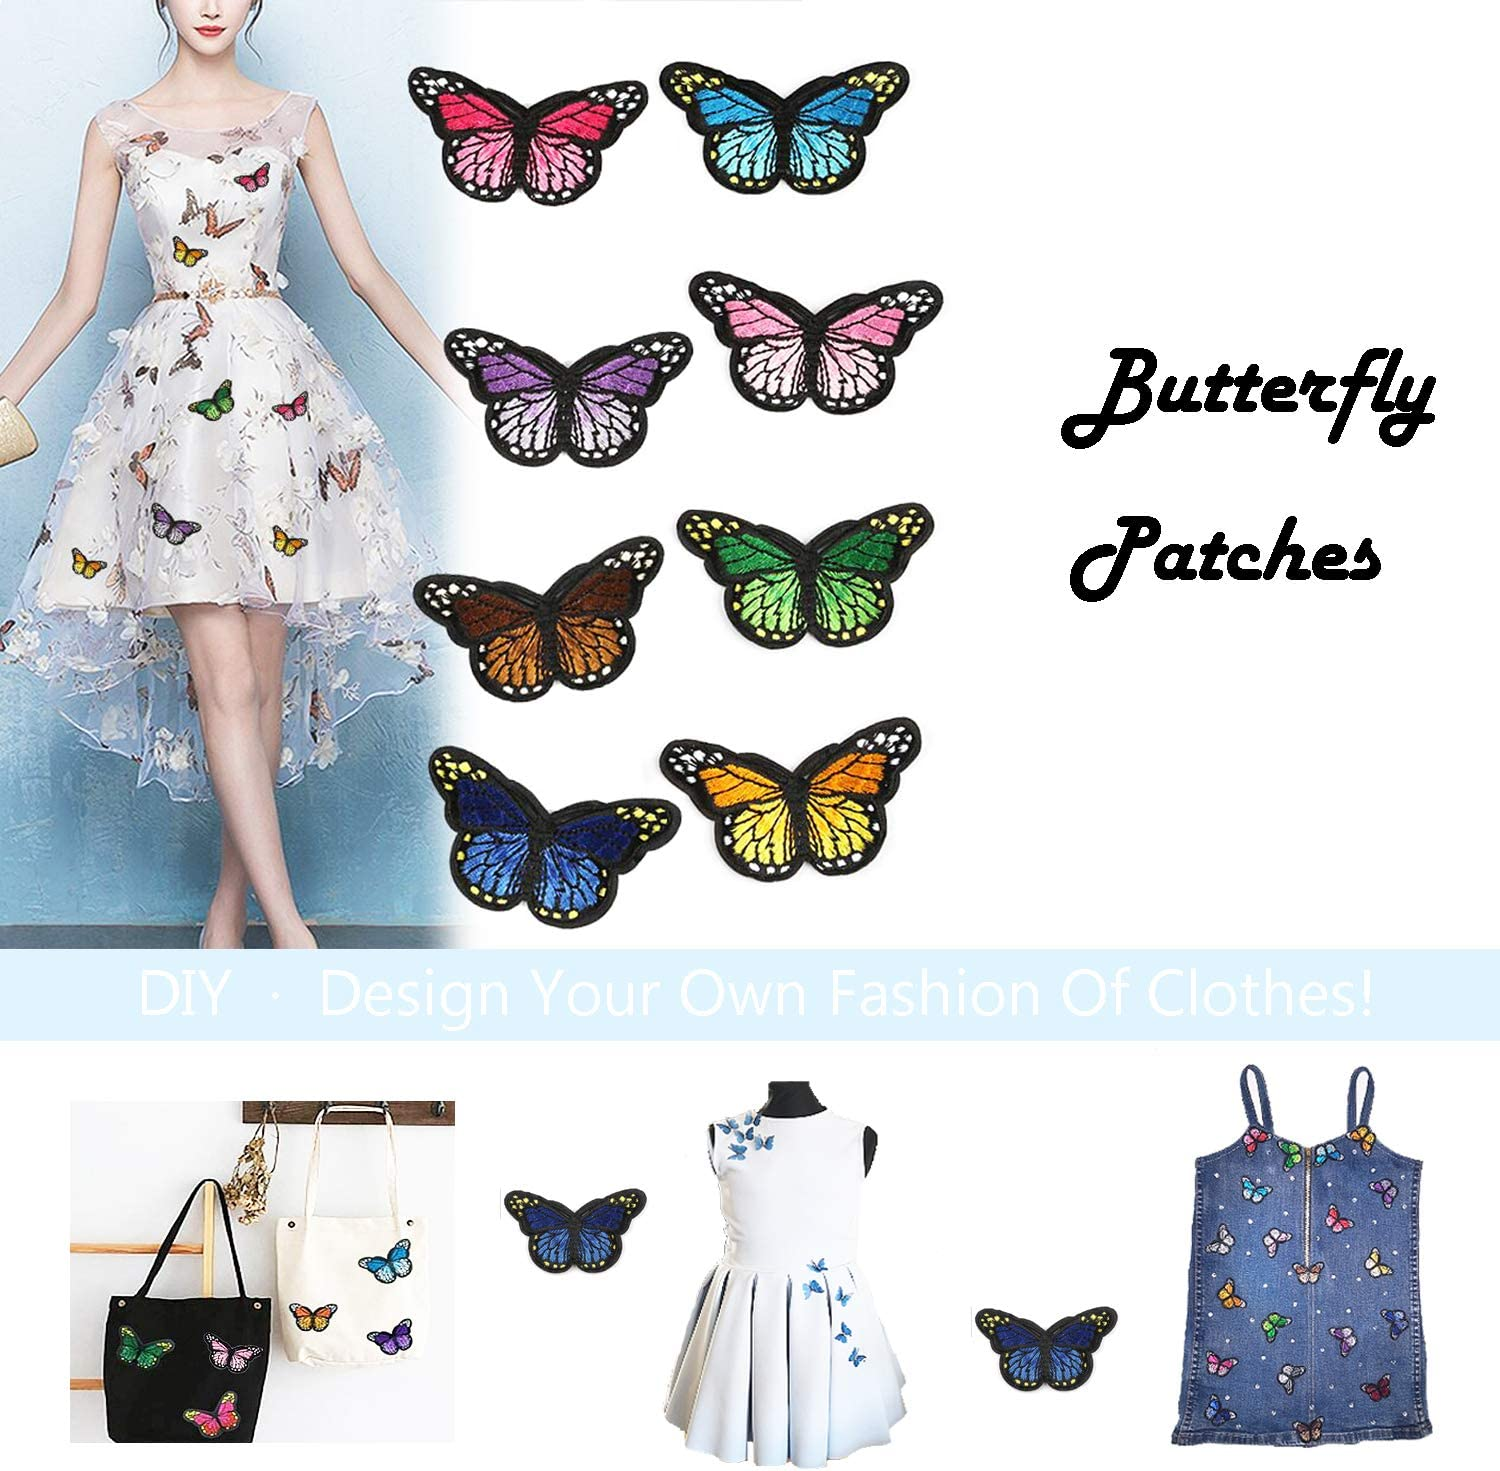 Bags,Caps 20PCs Butterfly Style Butterfly Patches Iron On Appliques for Clothing Embroidery Patches for Clothes Applique Patches for Arts Crafts DIY Decor